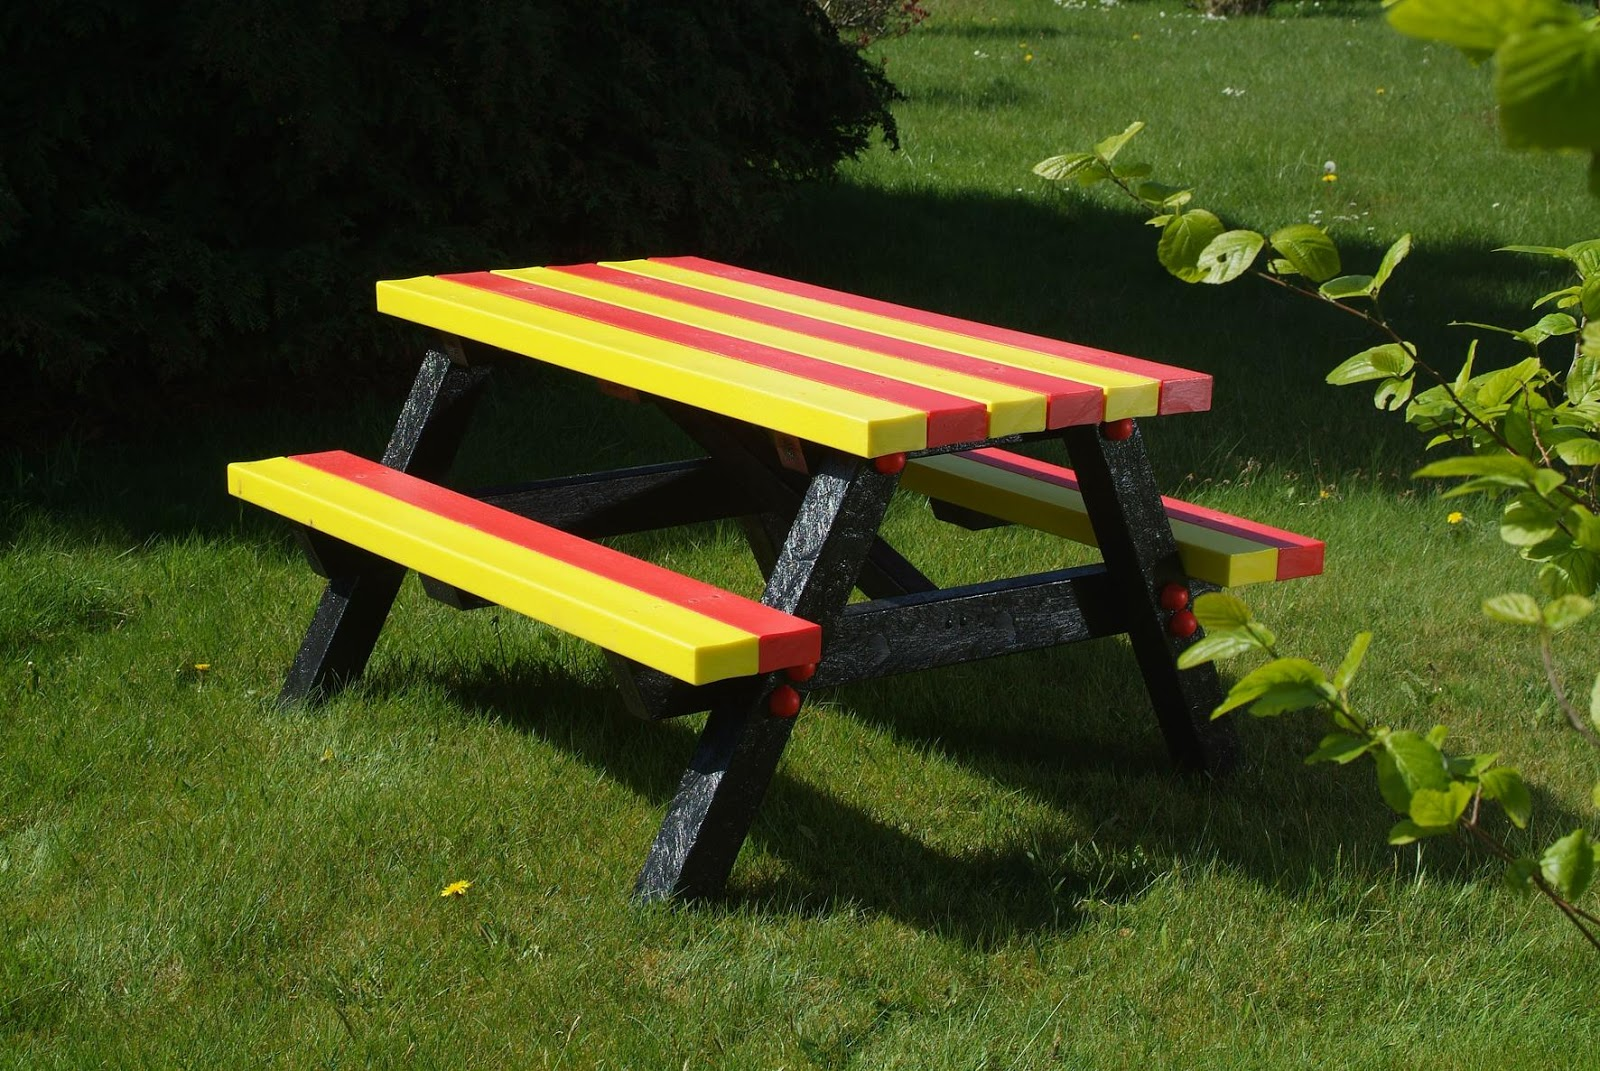 Wooden Picnic Tables Plastic picnic tables are